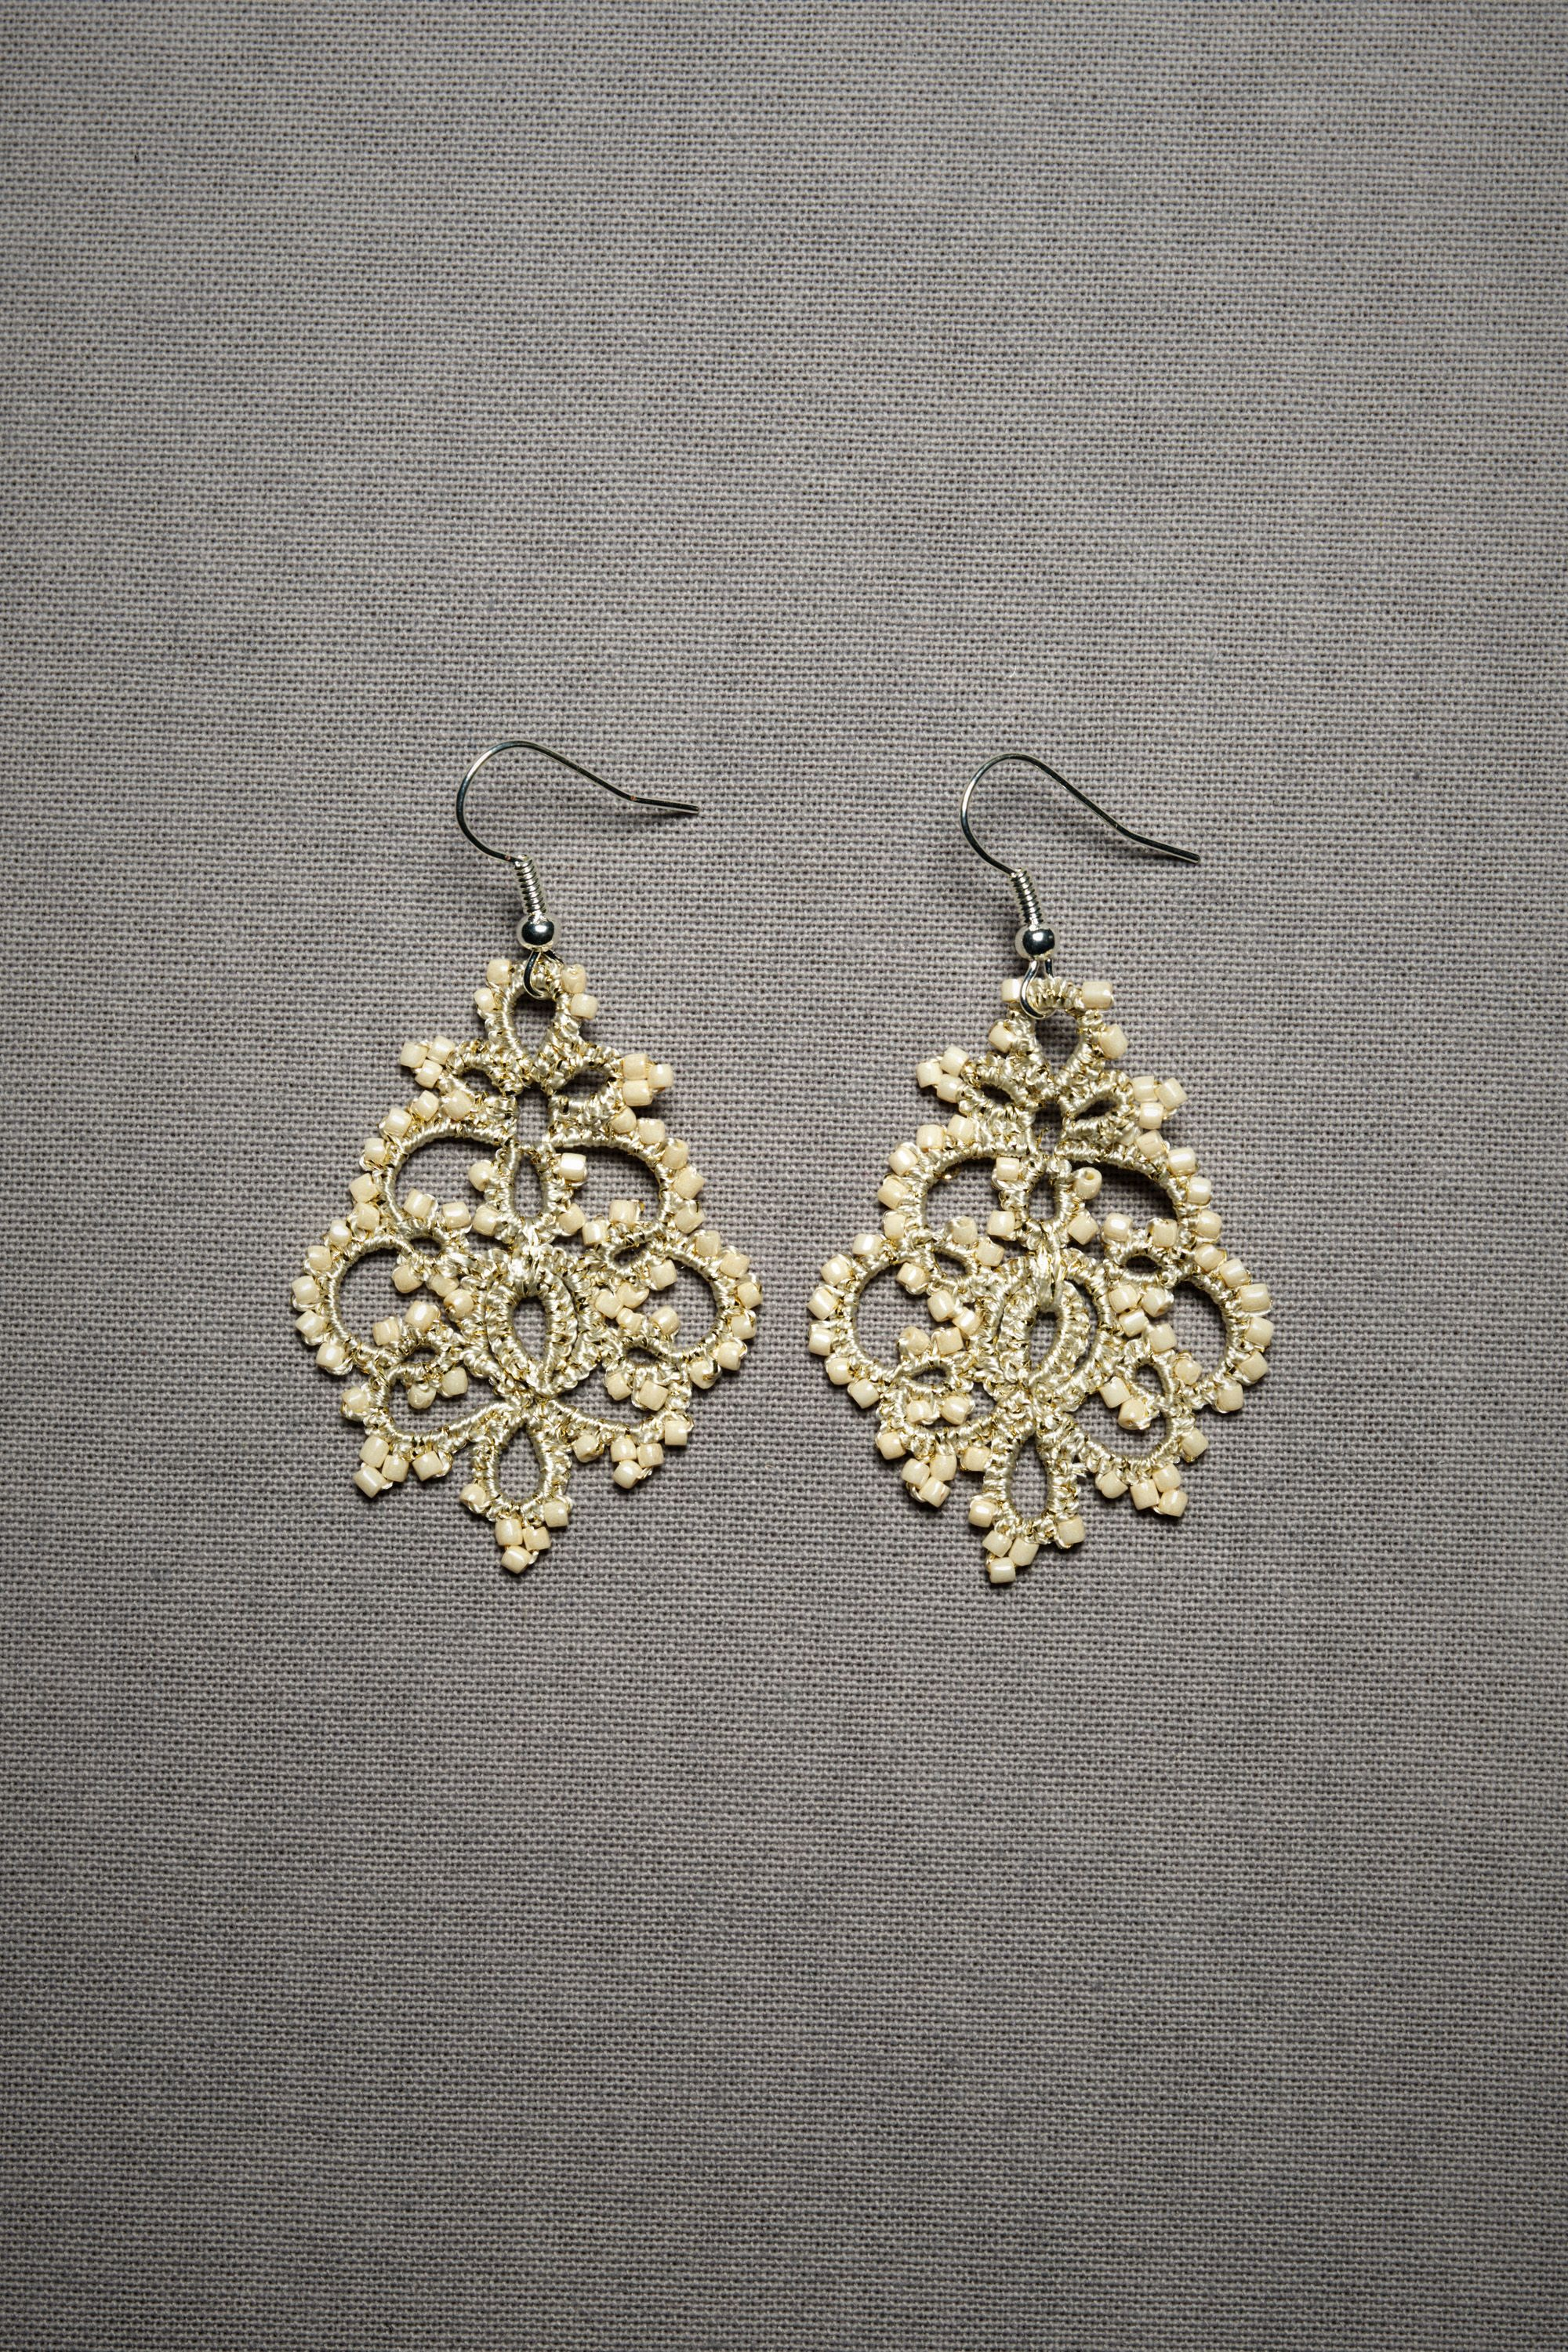 Queen Annes Lace Earrings